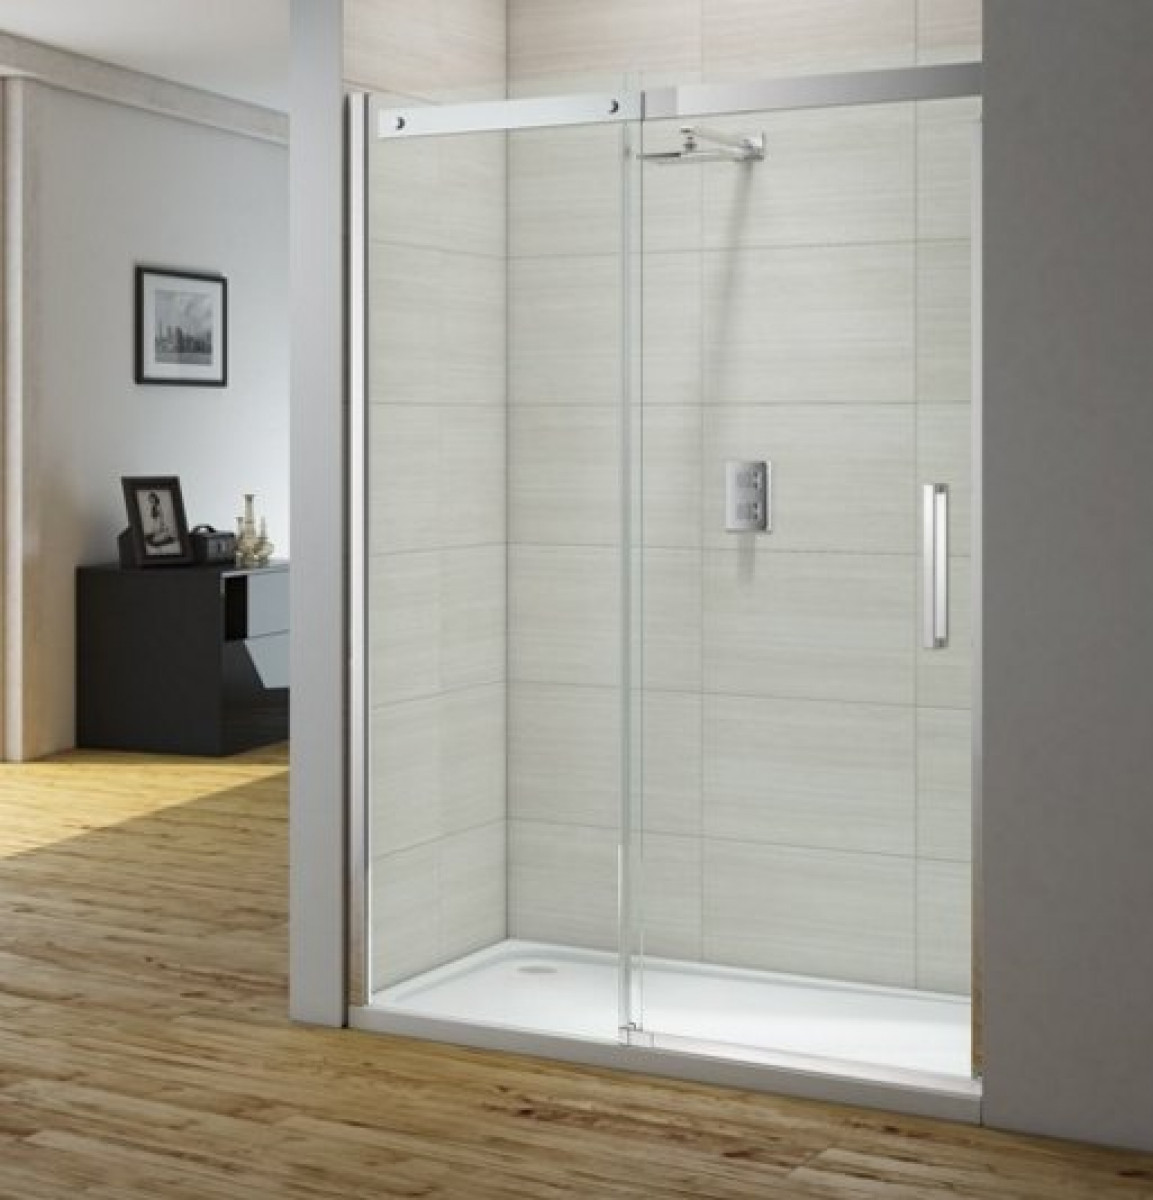 Merlyn ionic gravity 1200mm sliding shower door igcsl1200 for 1200mm shower door sliding